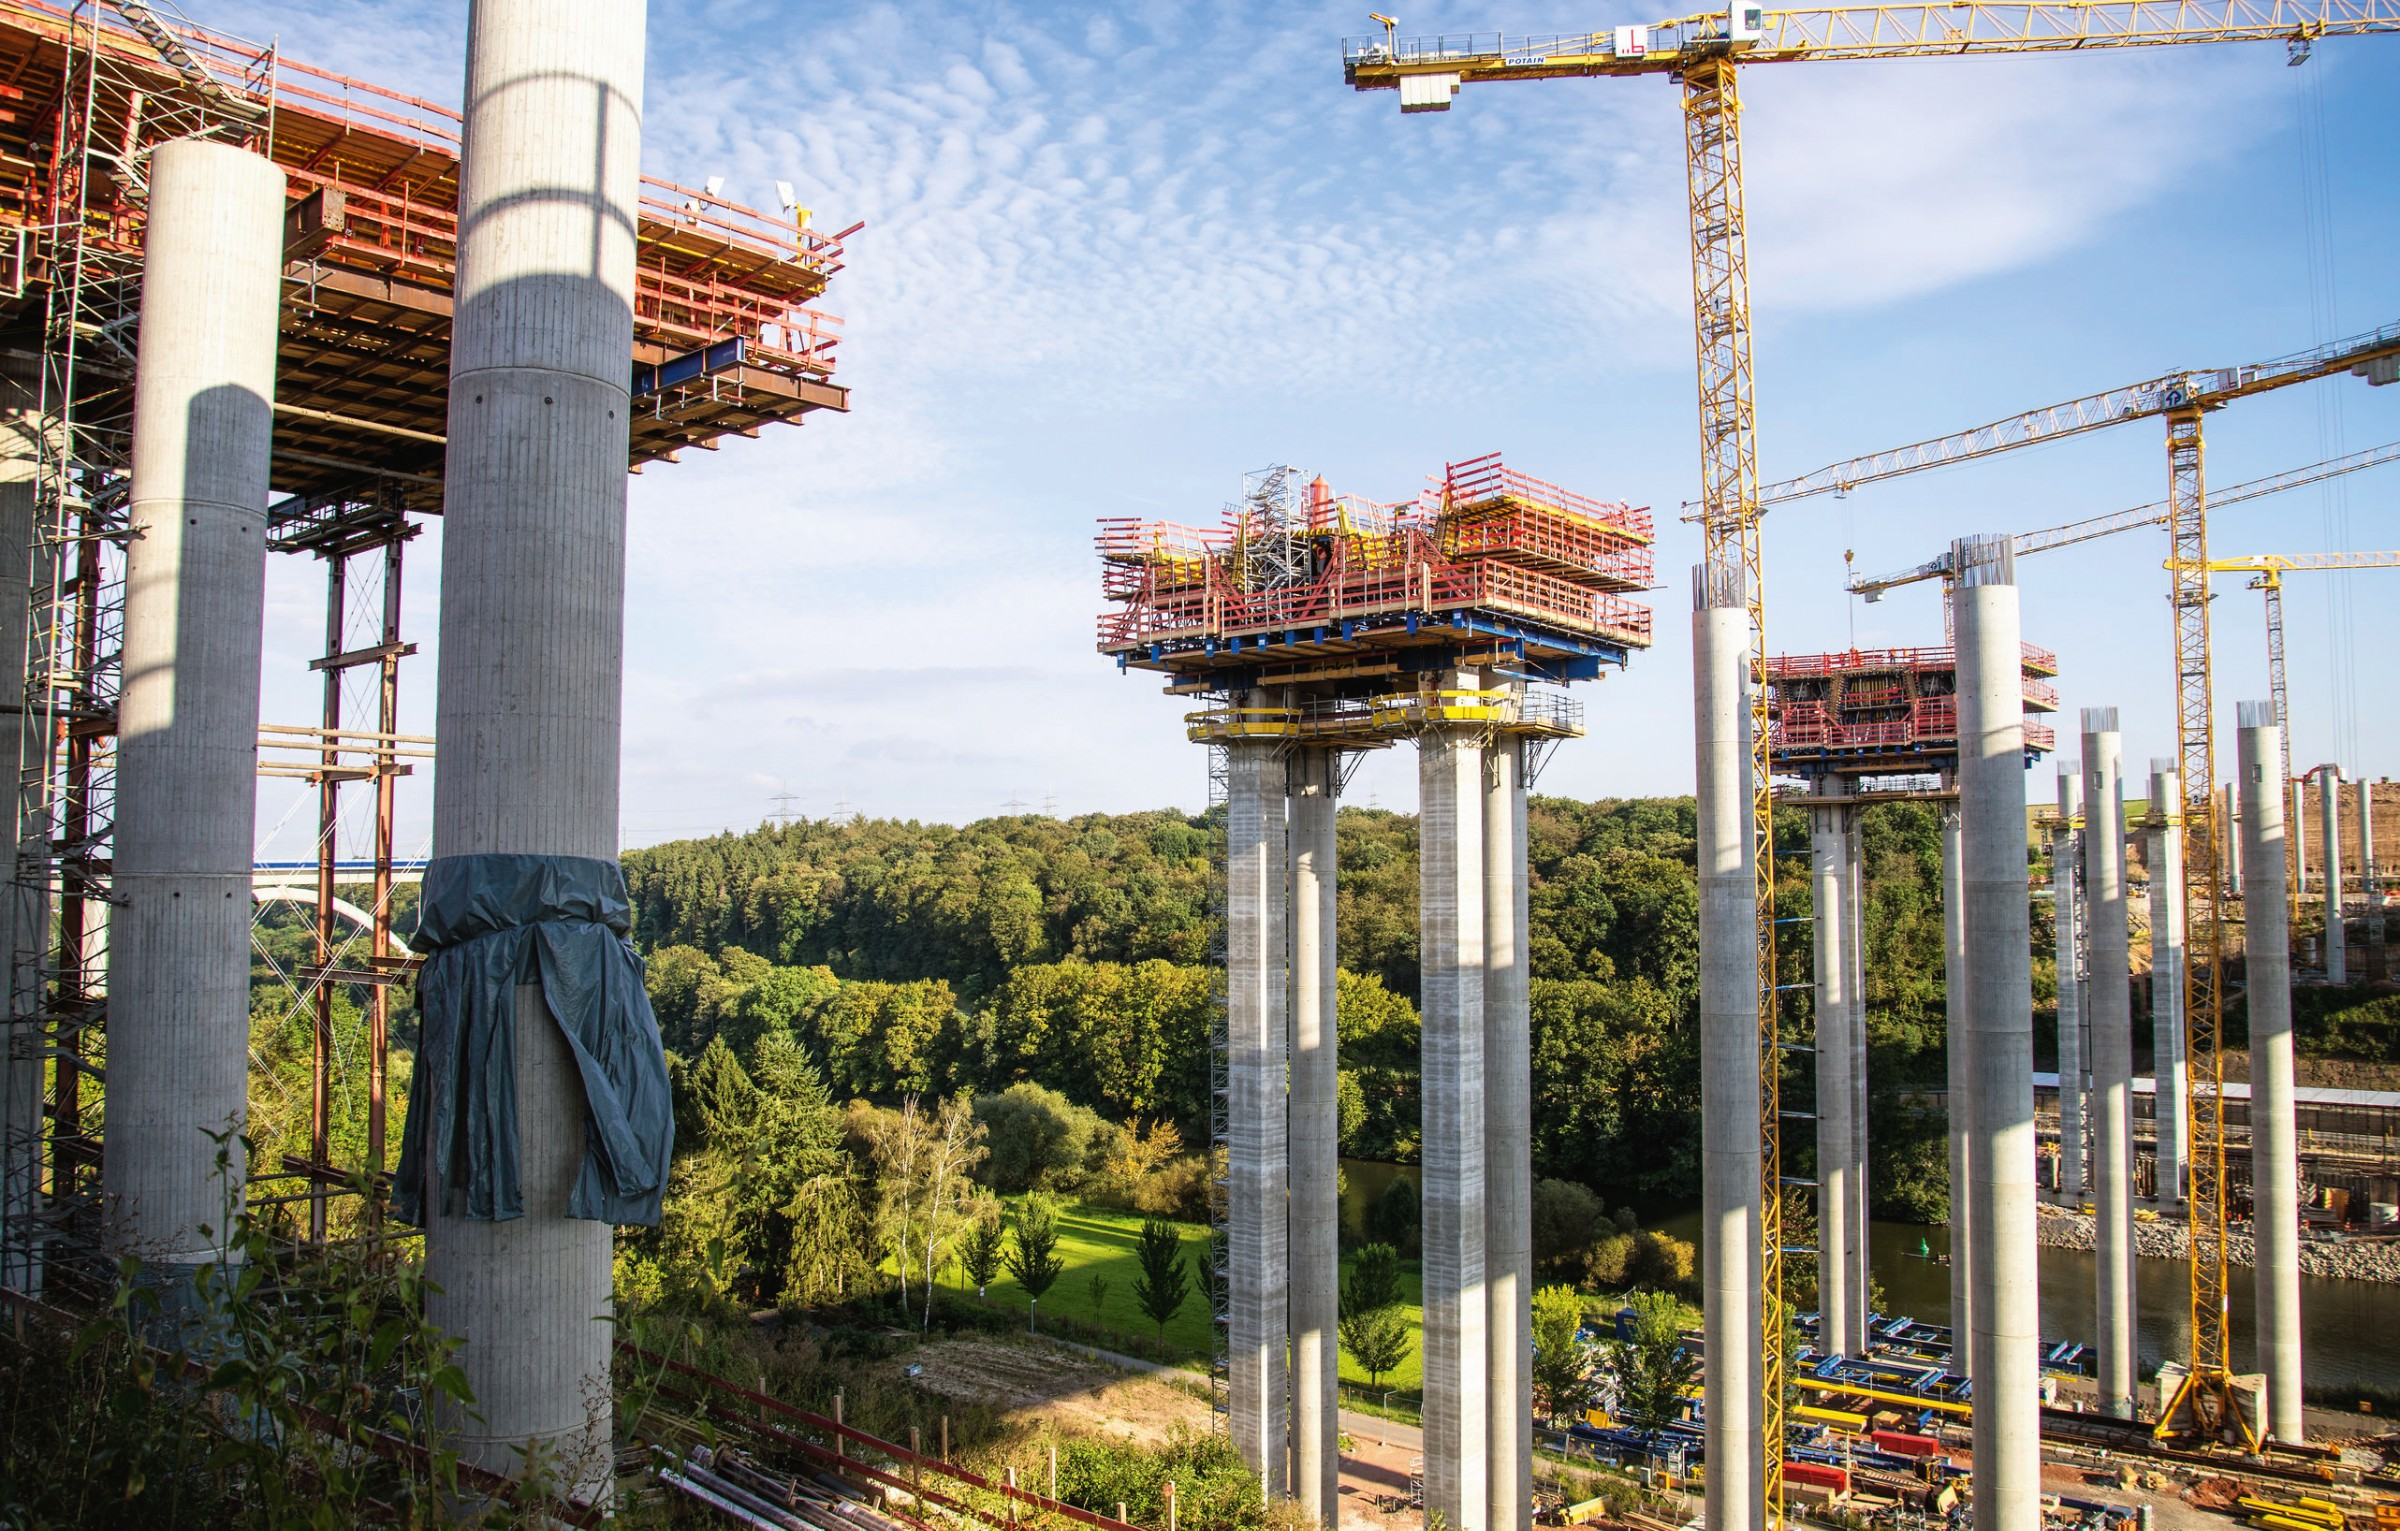 35676489 - construction work on the bridge of the a3 motorway, leading in limburg (germany) over the lahn valley.